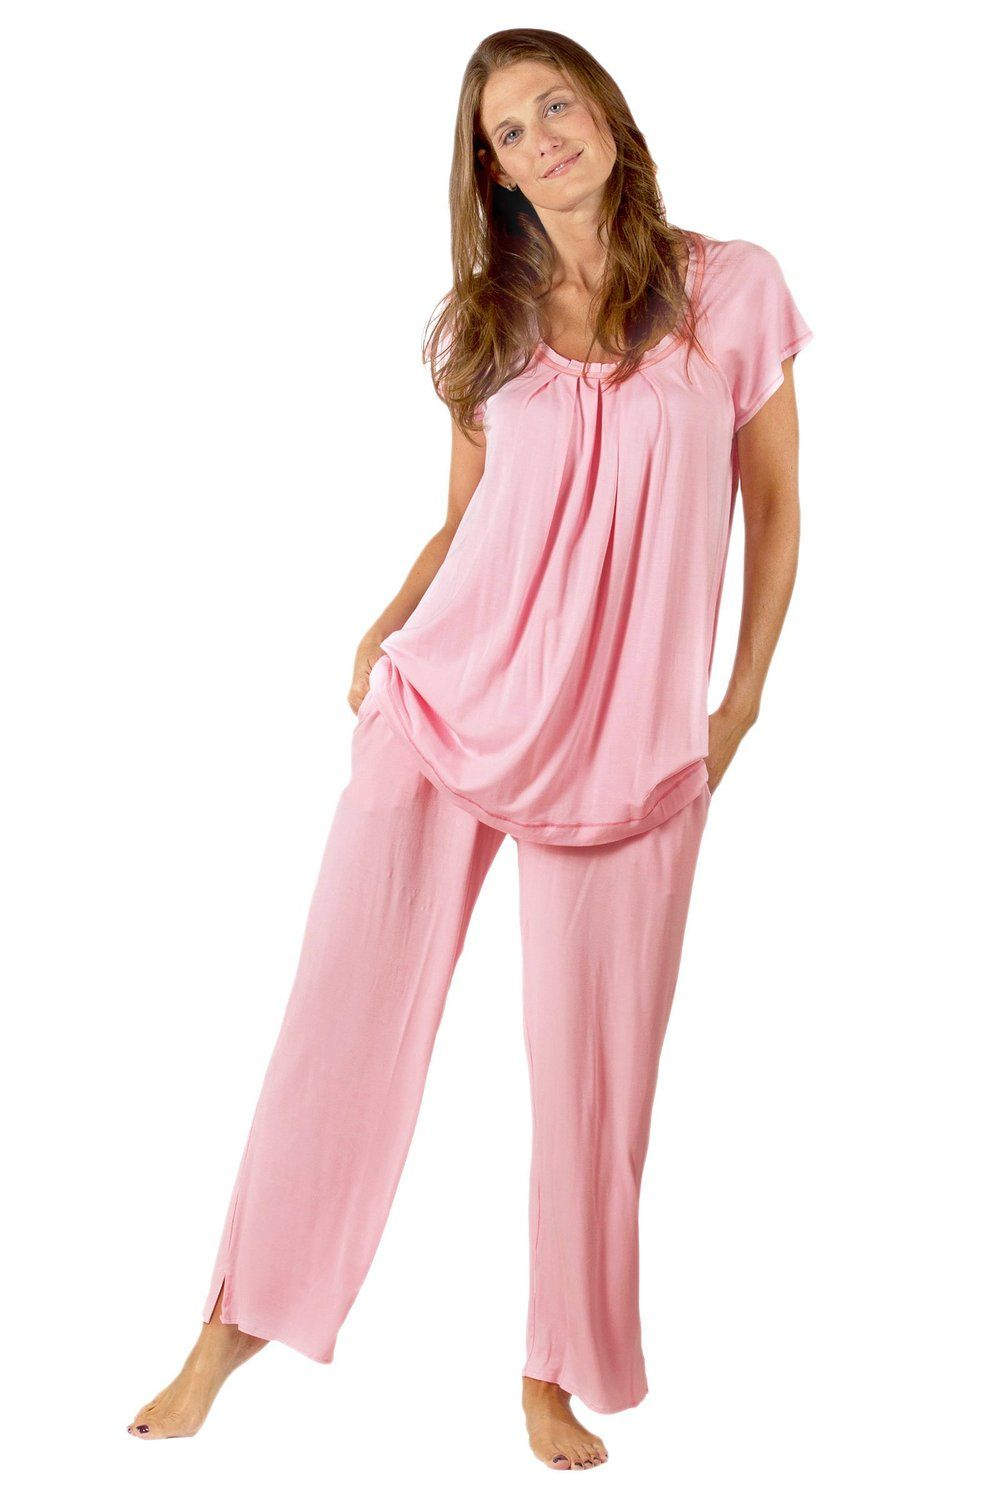 in sets shirt drop sleeves casual three shipping set sweetpine pajamas women comforter item s from two warm quarter piece pants neck v comfortable pajama